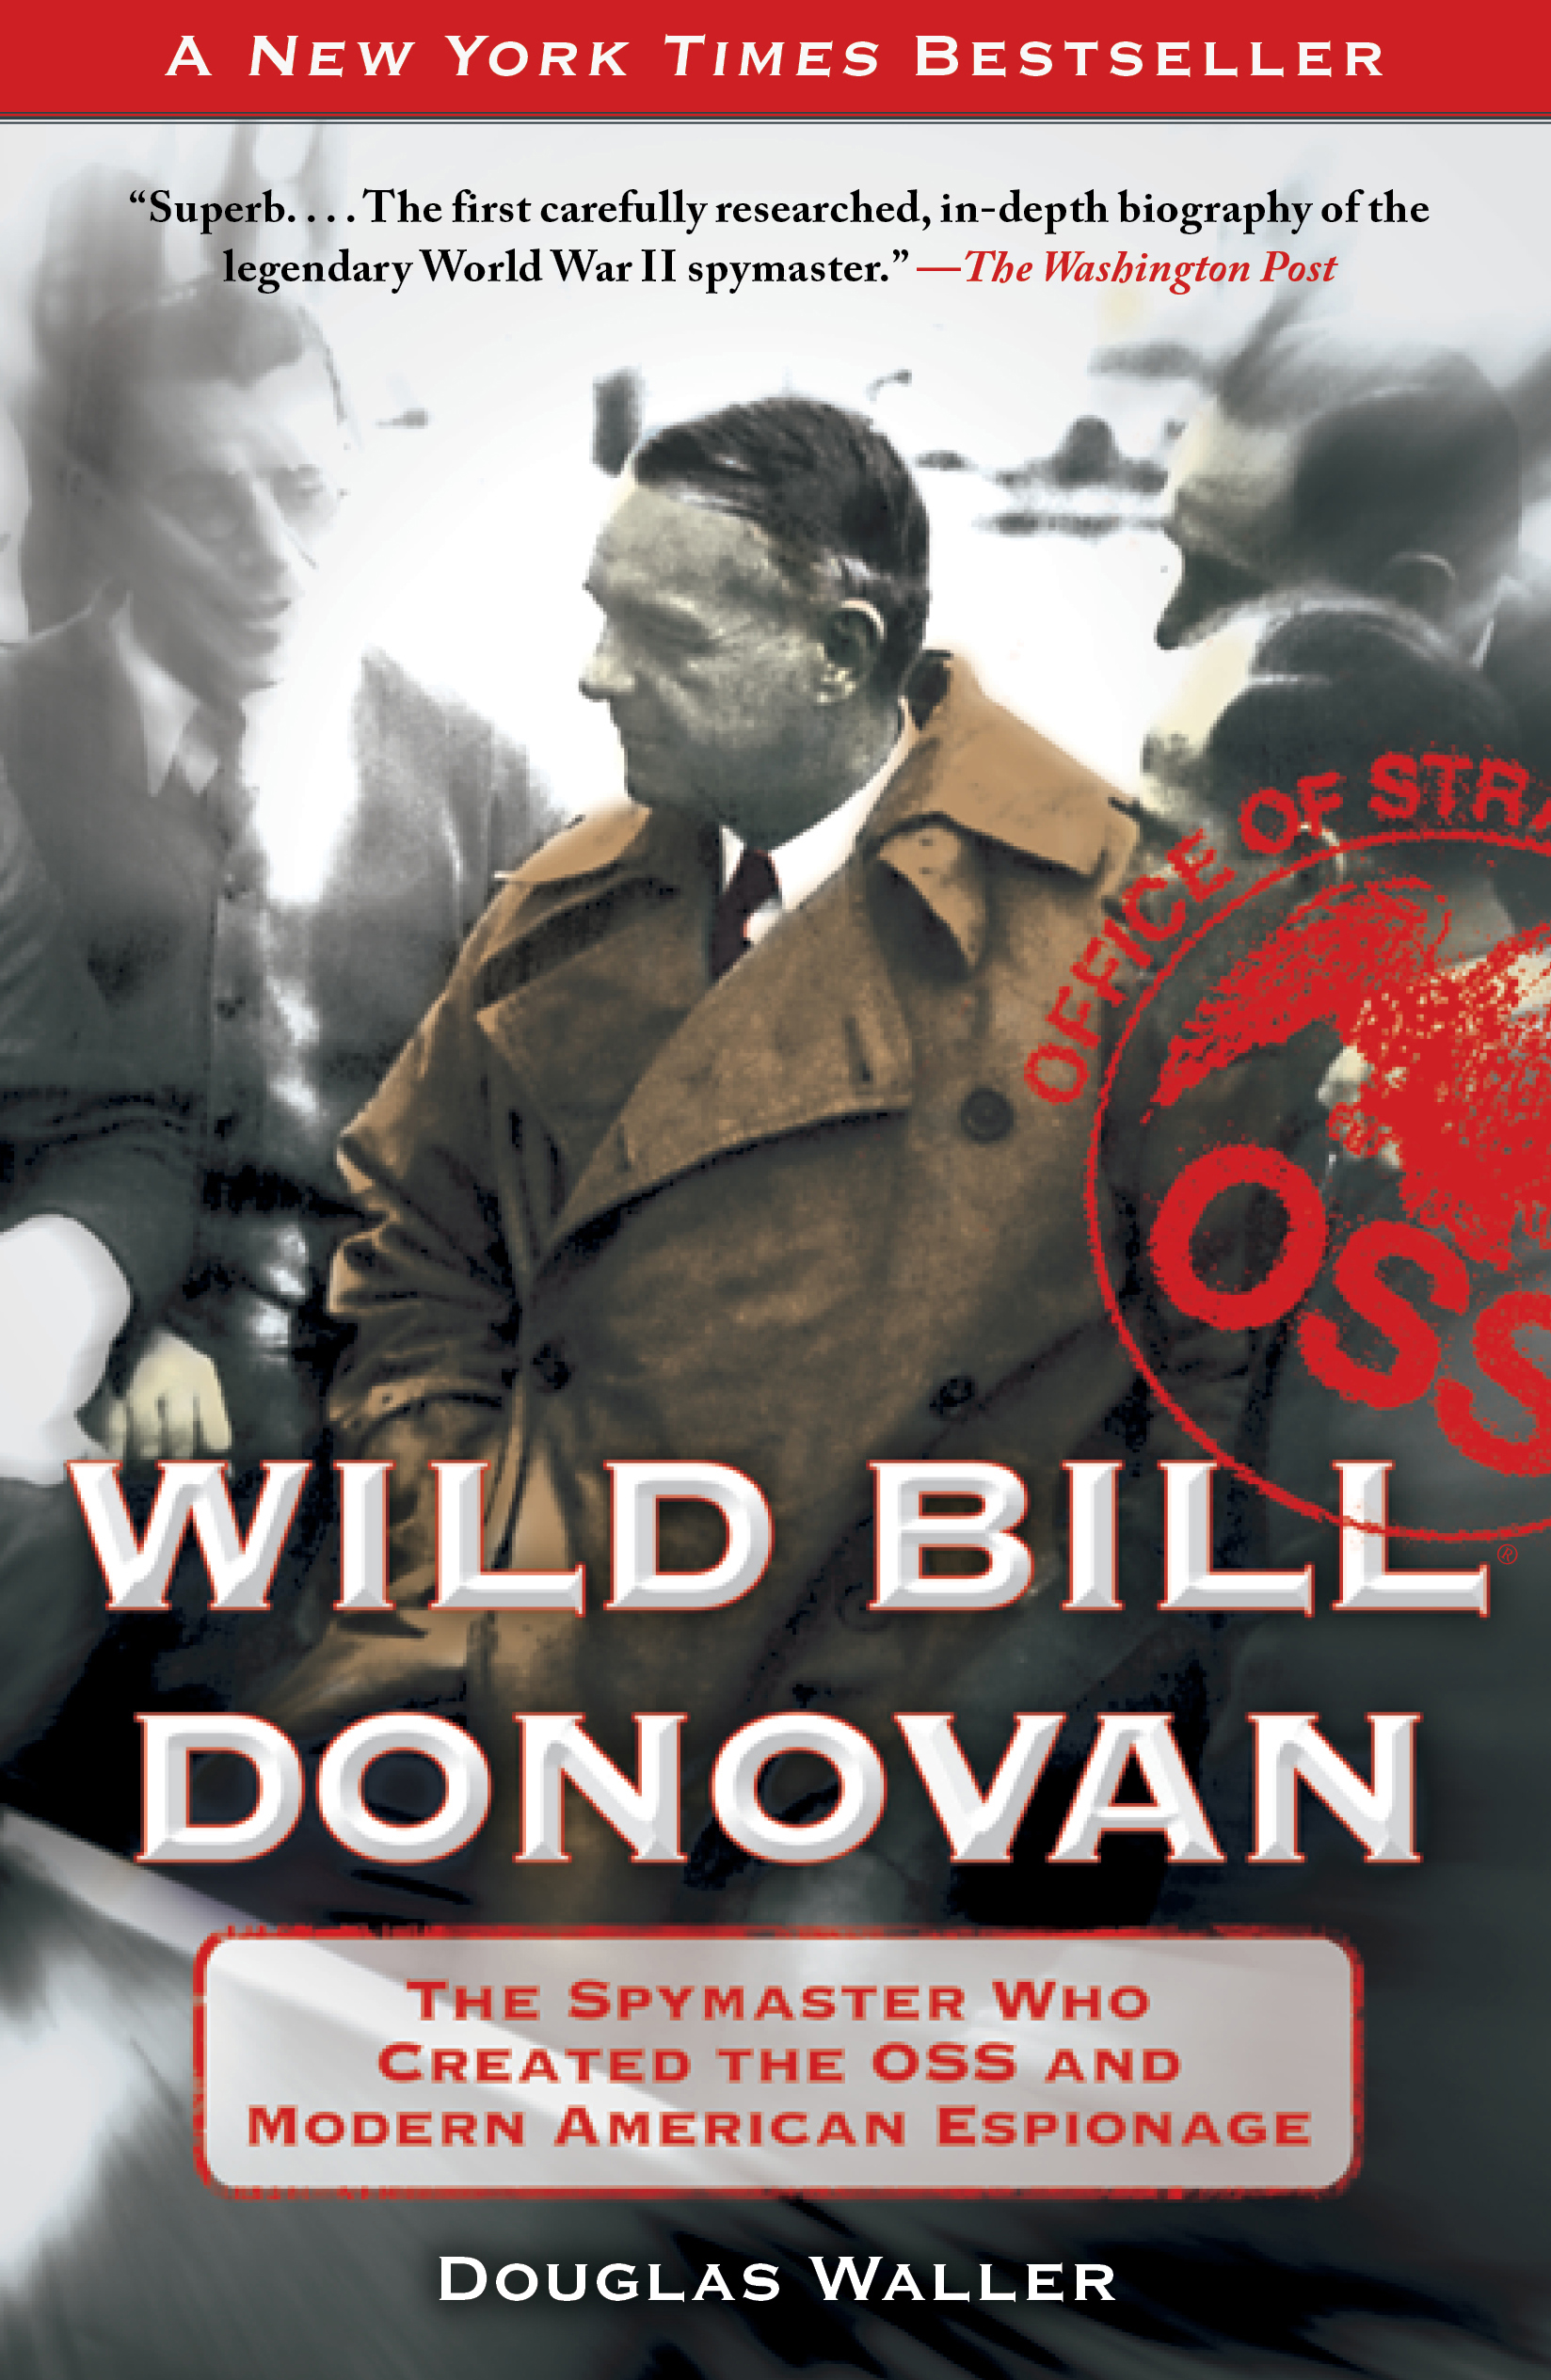 Read an Excerpt from Wild Bill Donovan